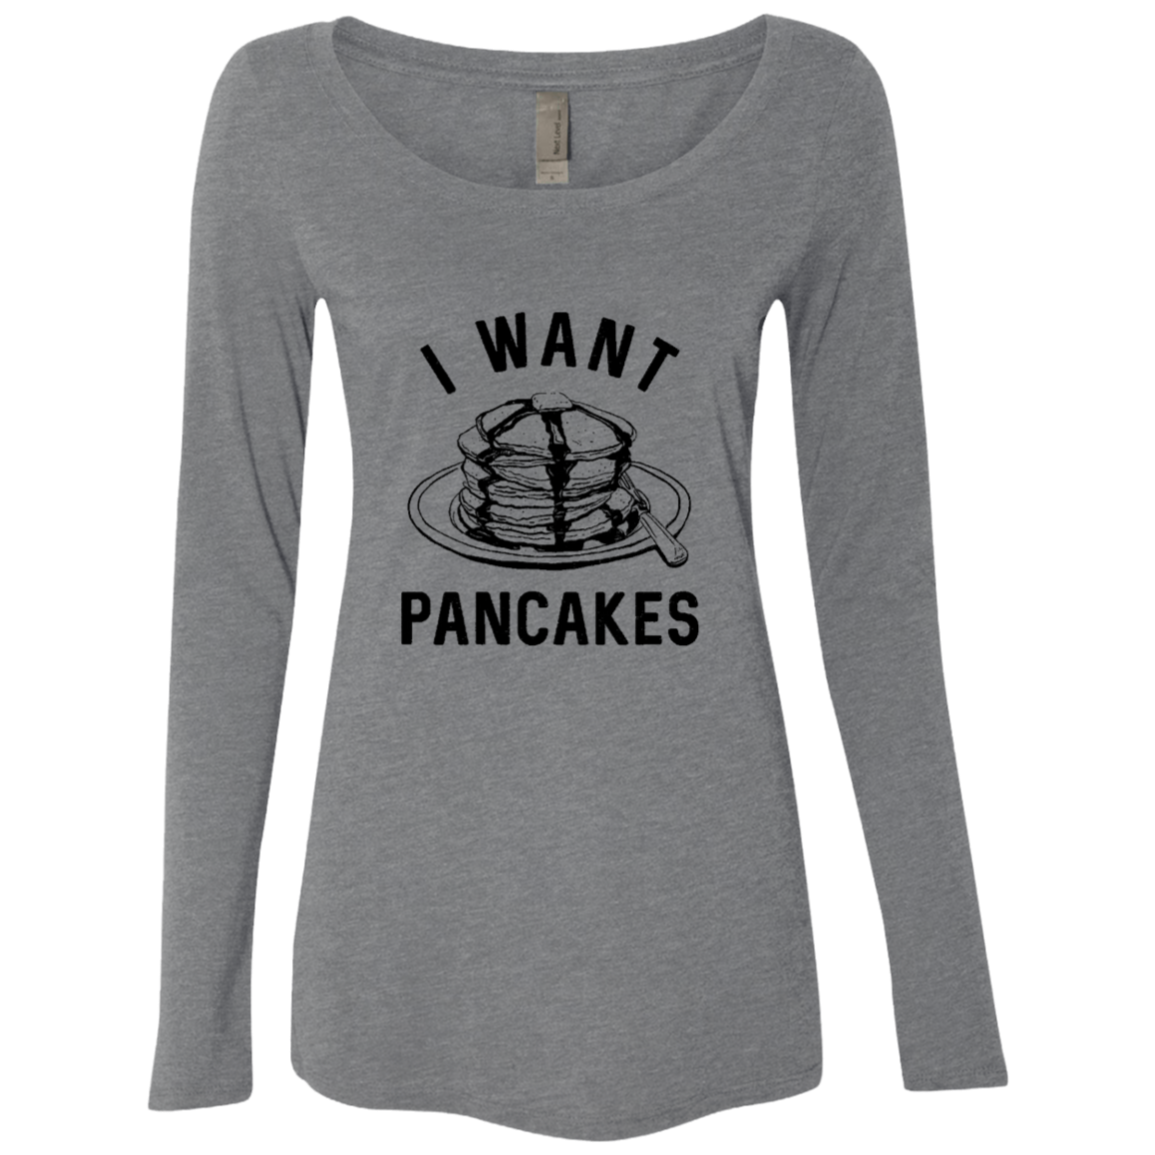 I Want Pancakes Women's Long Sleeve Tee